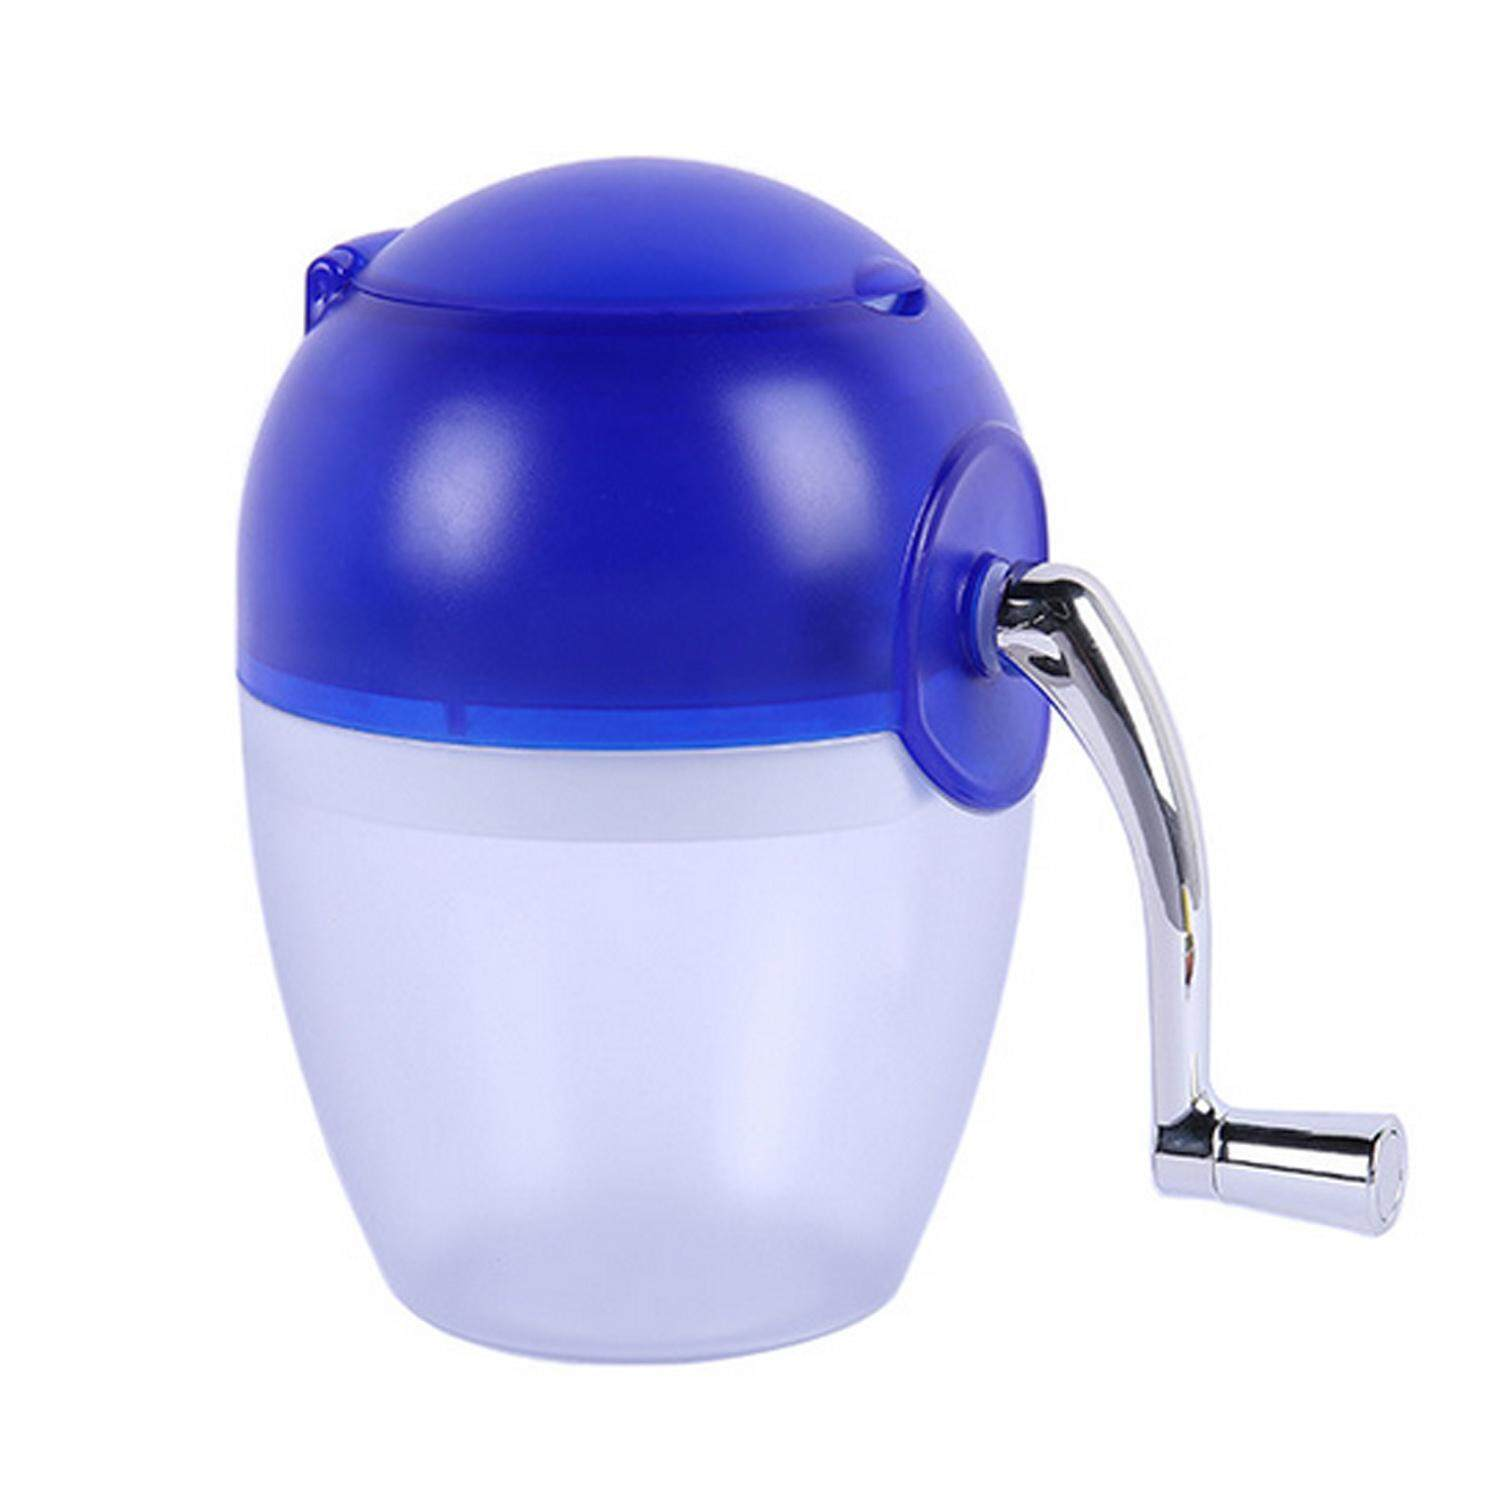 Mini Manual Hand Crank Ice Crusher Ice Grinder Shaver Machine Tool Home Kitchen Accessories for Smoothie